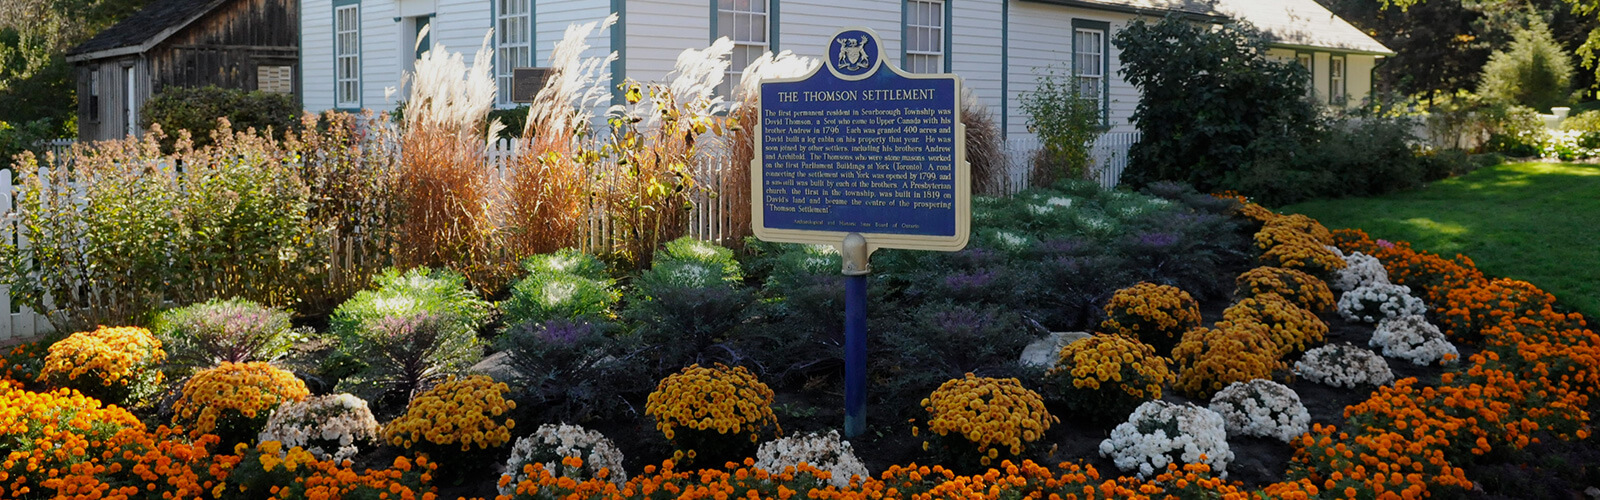 A large lush flower bed sits in front of one of the Scarborough Museum buildings. A white picket fence runs between them. A historic plaque on a post sits in front of the flower bed.